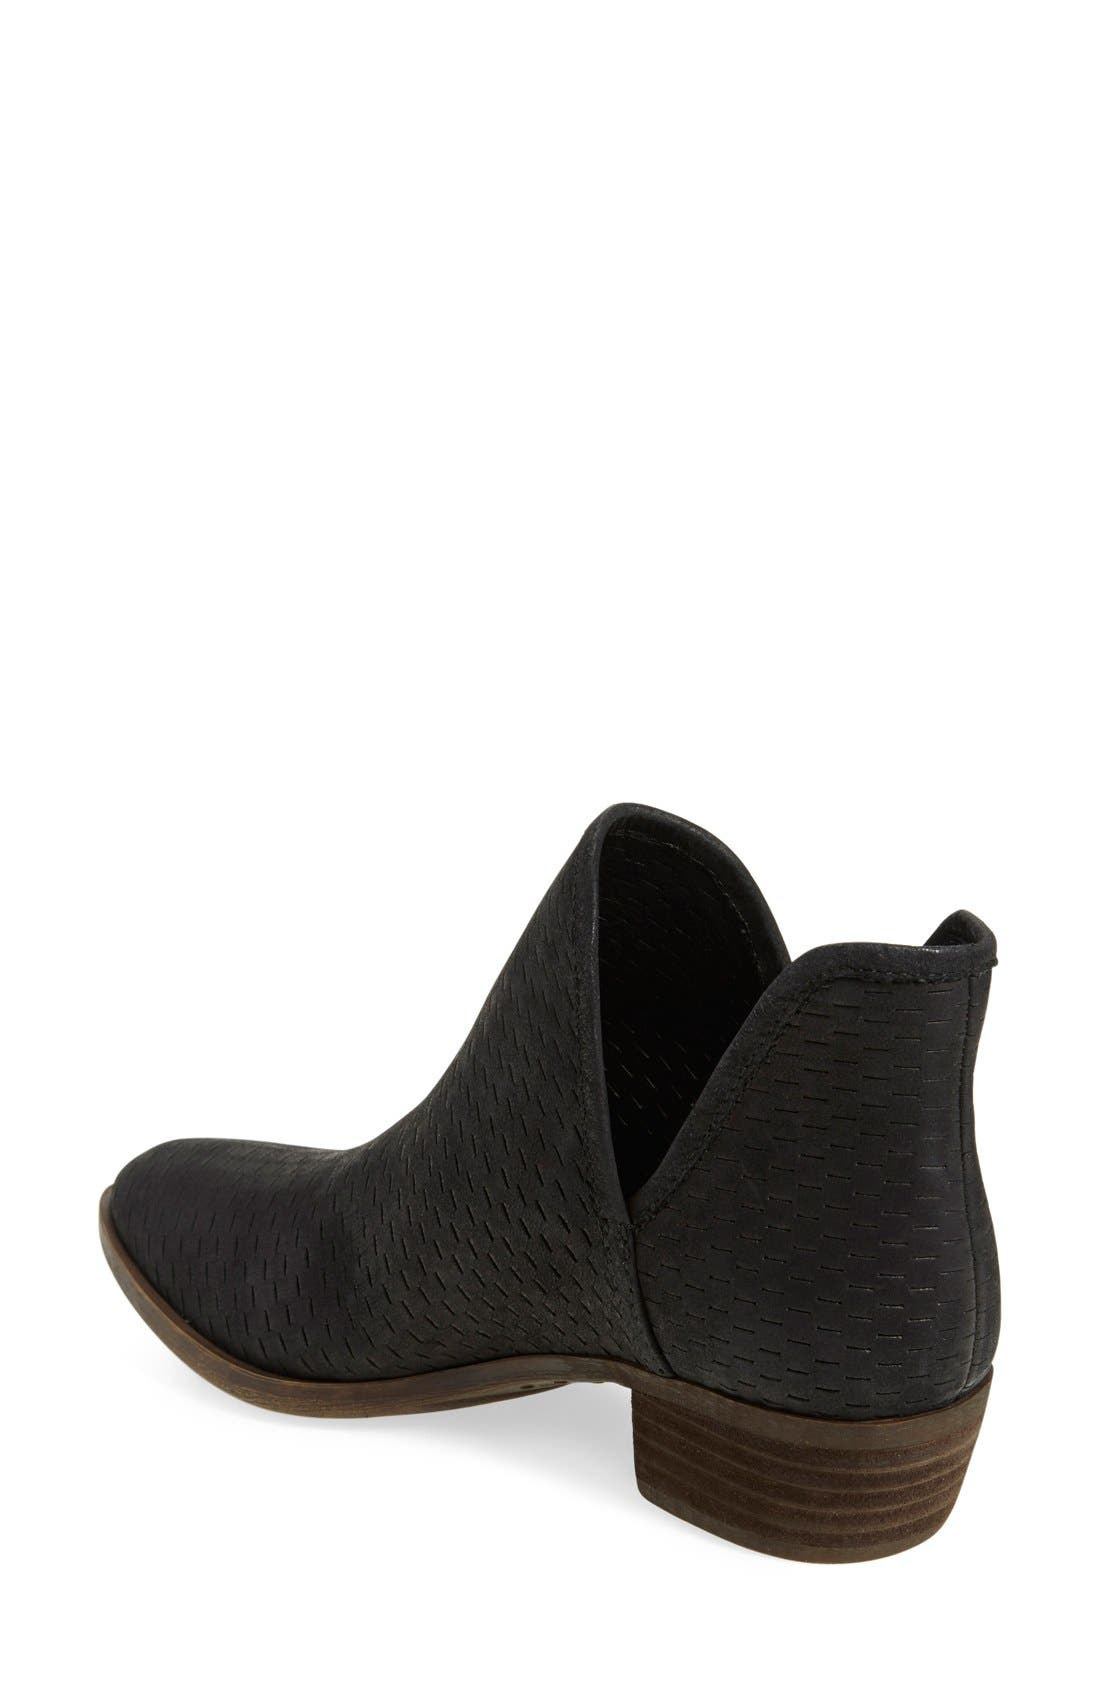 'Bashina' Perforated Bootie,                             Alternate thumbnail 2, color,                             001